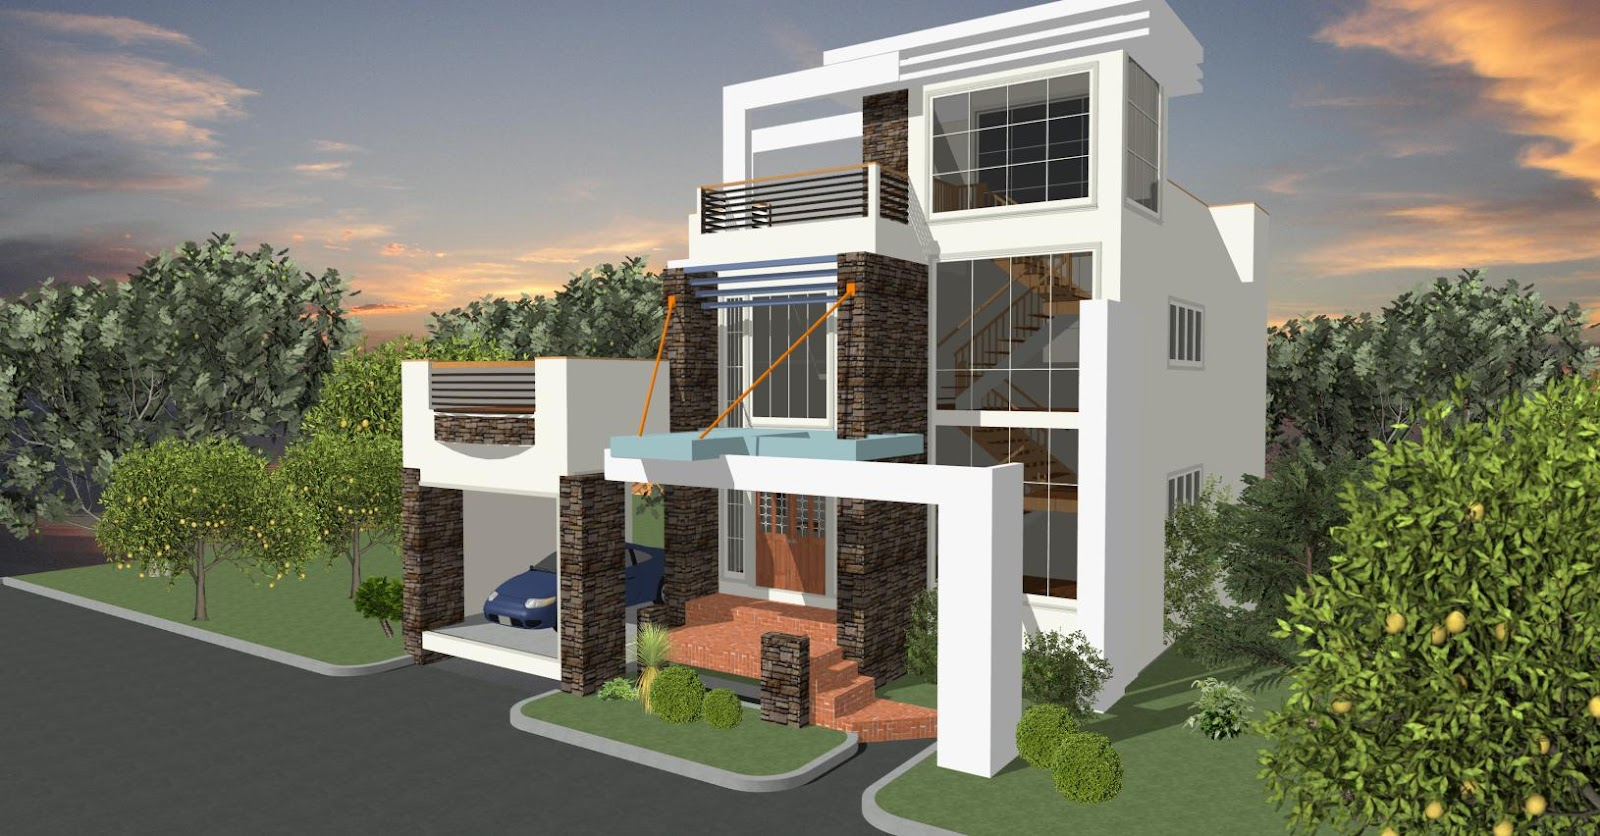 House designs in the philippines in iloilo by erecre group for The model house